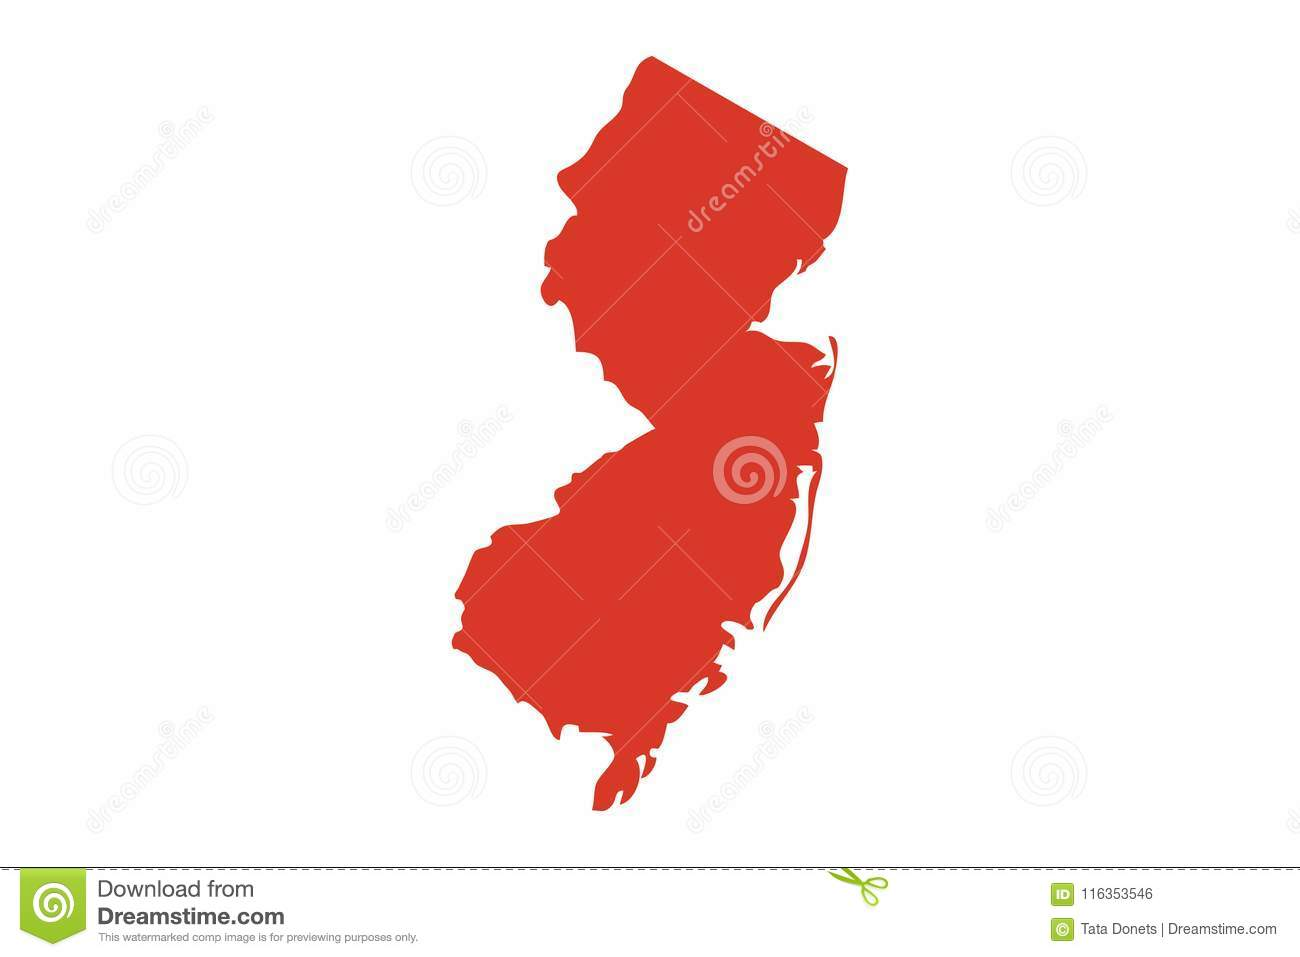 State of New Jersey vector map silhouette. Outline NJ shape icon or contour map of the State of New Jersey